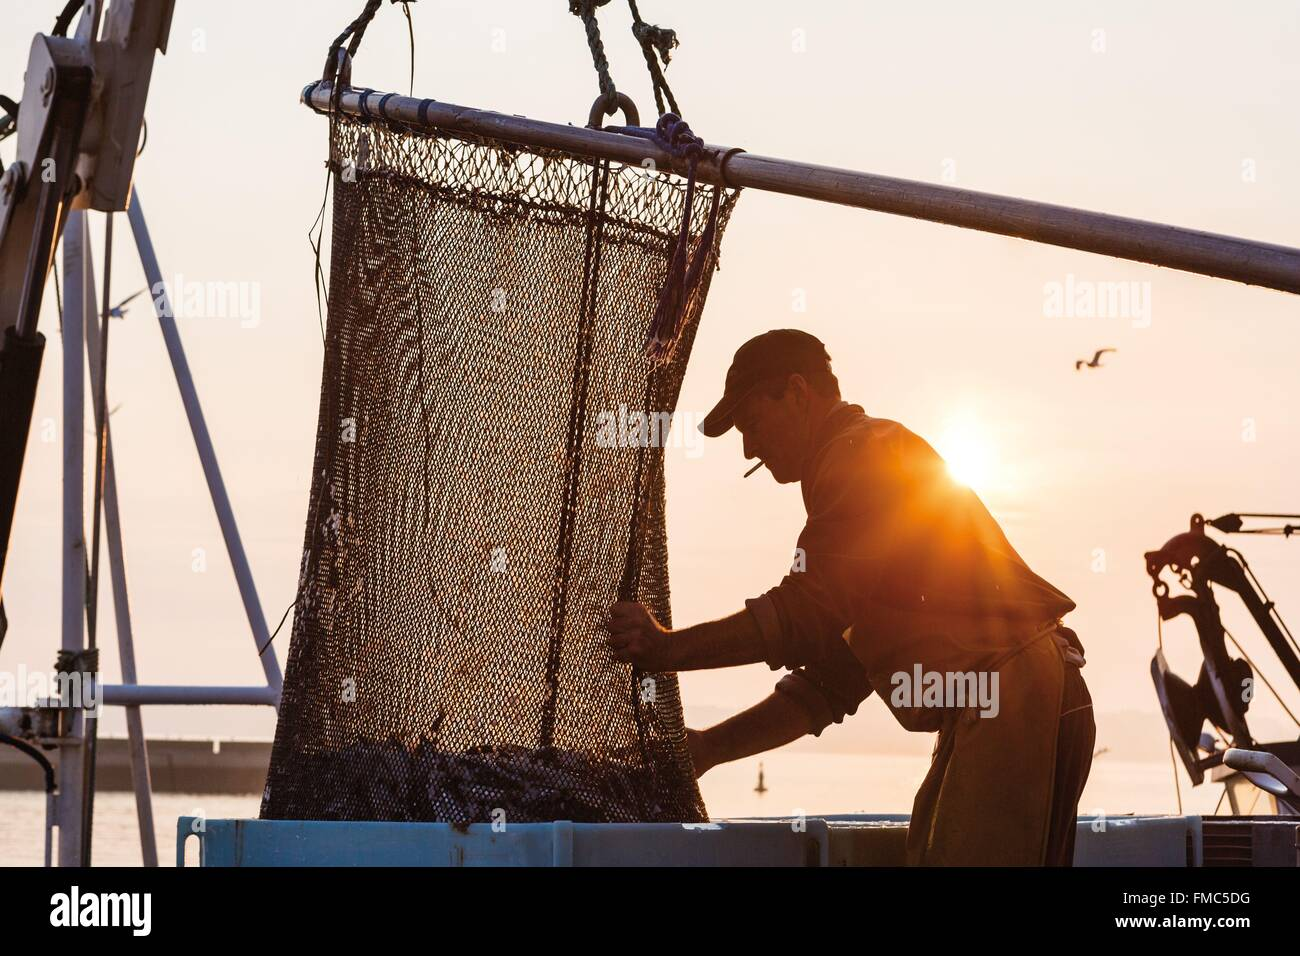 France, Finistere, Douarnenez, fisherman unloading a fish fillet in the pan - Stock Image